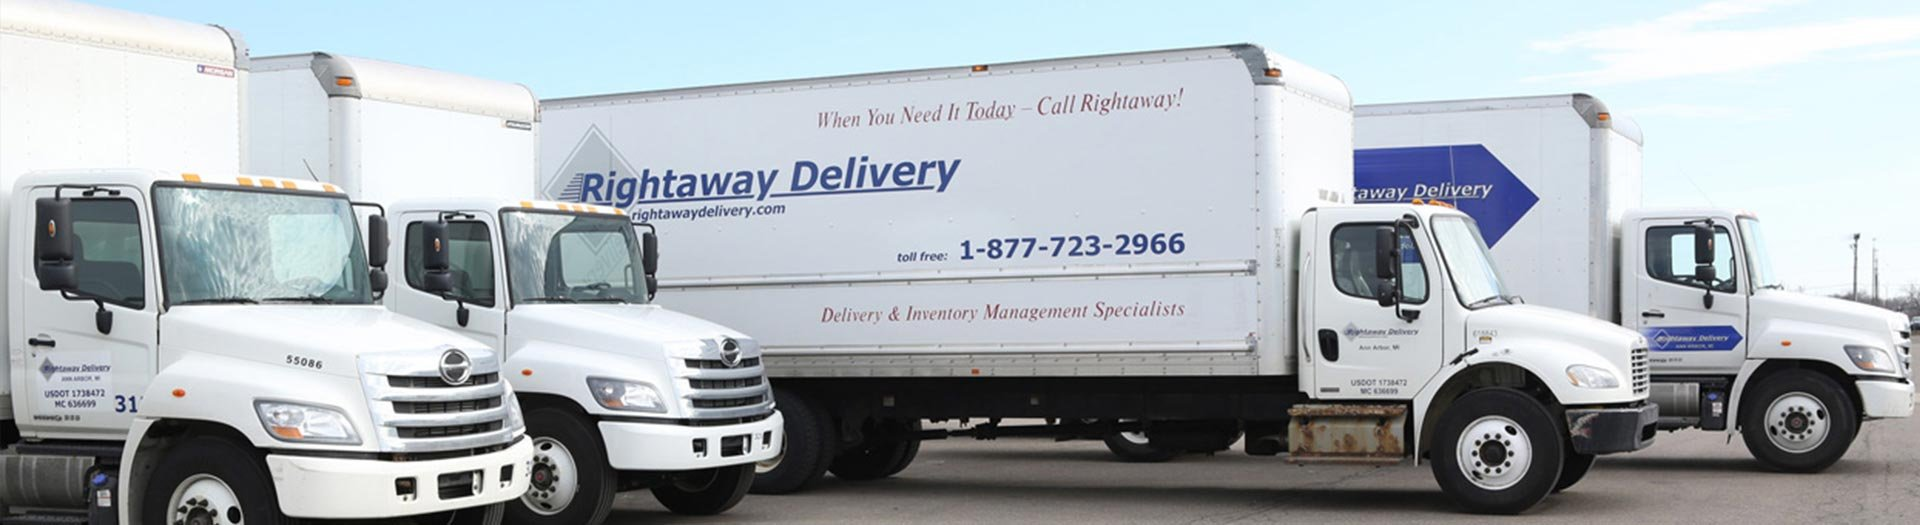 Welcome to Rightaway Delivery